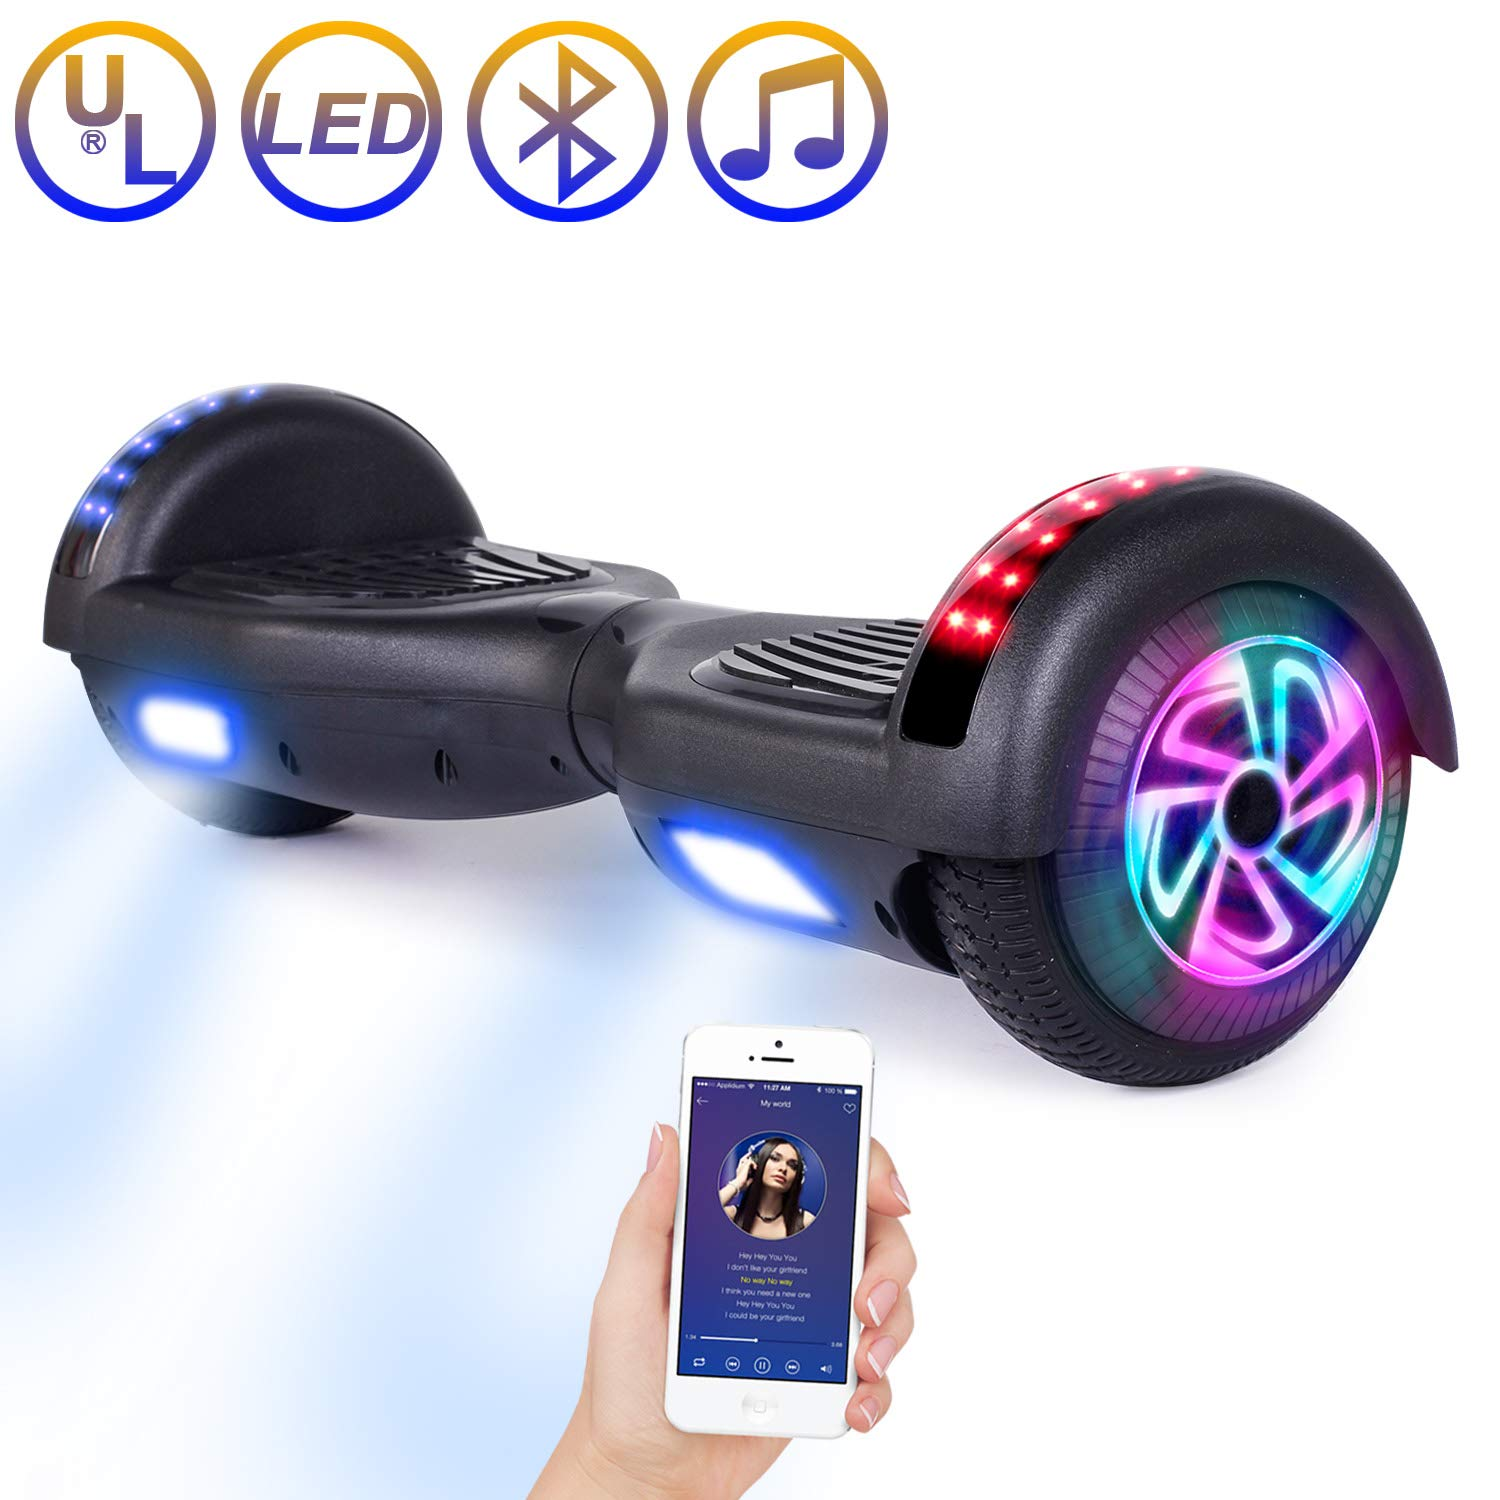 SISIGAD Hoverboard Bluetooth, Self Balancing Scooter 6.5 Self Balancing Hover Board with Bluetooth Speaker and LED Lights Hoverboards for Kids Adults UL 2272 Certified - 4 Color Available